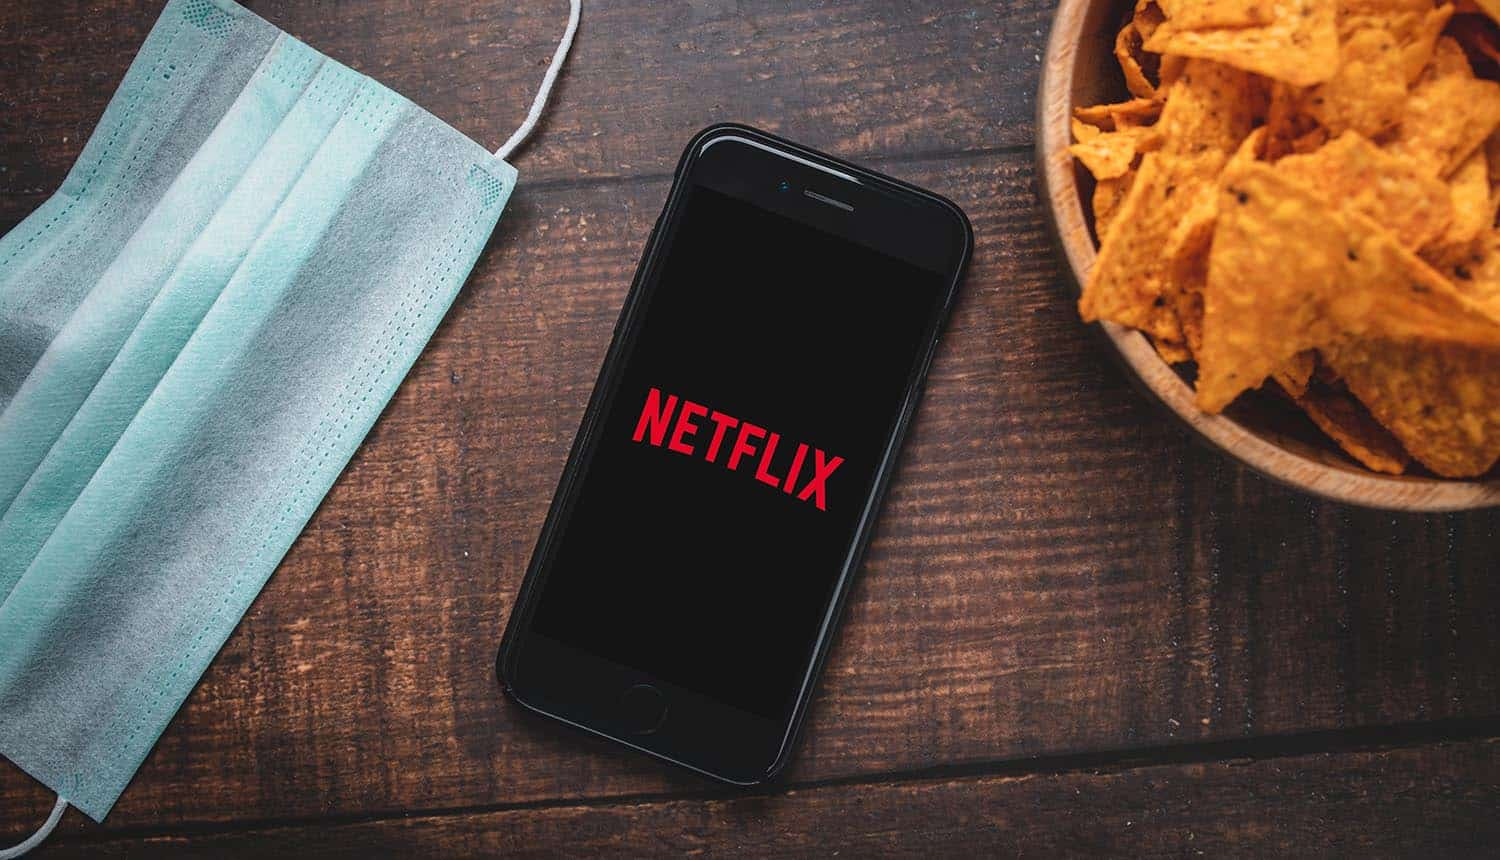 Phone with Netflix app logo and mask on table showing the increase in scam websites mimicking online streaming services